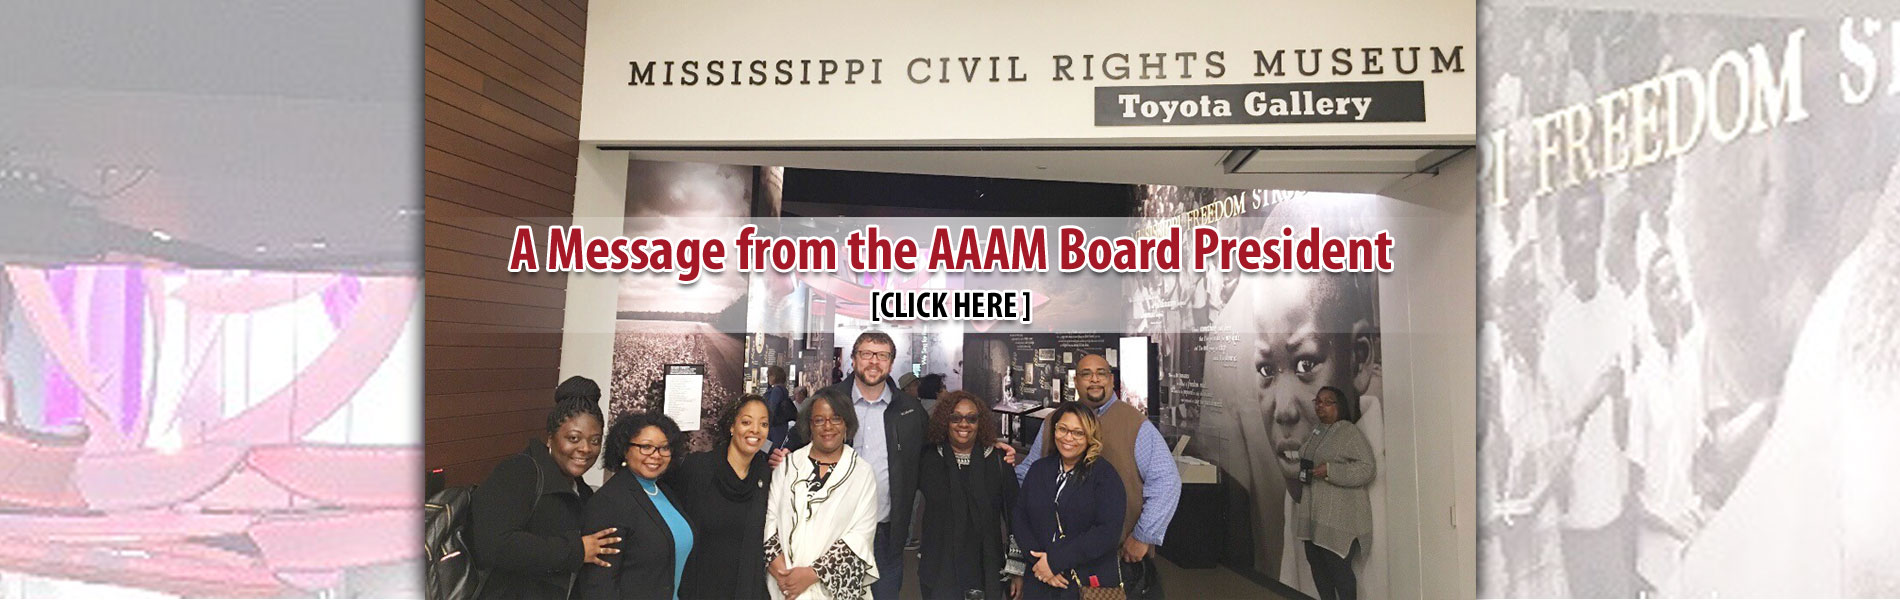 A Message from the AAAM Board President